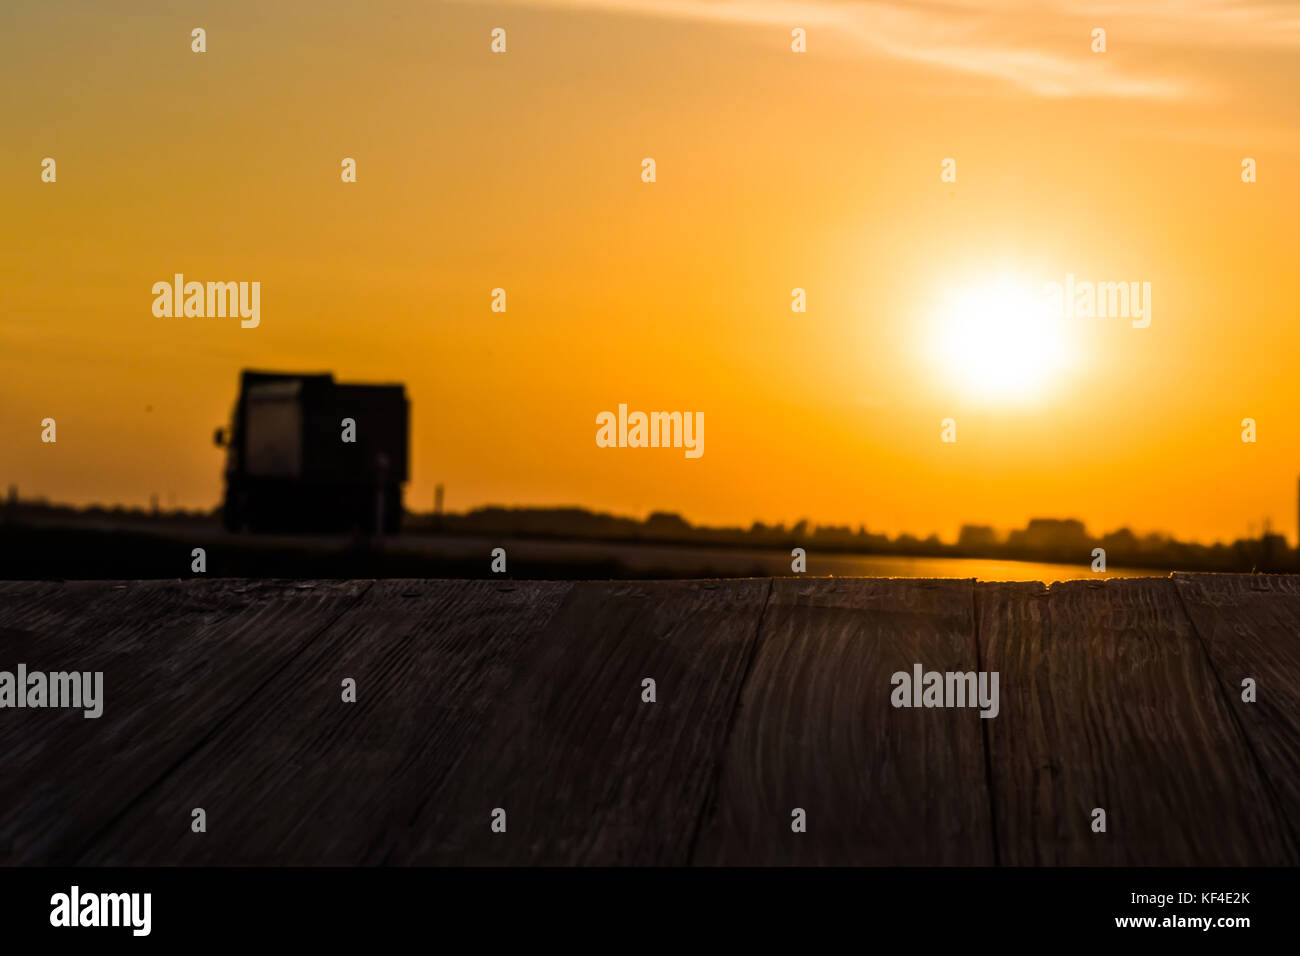 Empty rustic wood table top with motion blurred truck at sunset background. Can montage or display your products. & Empty rustic wood table top with motion blurred truck at sunset ...